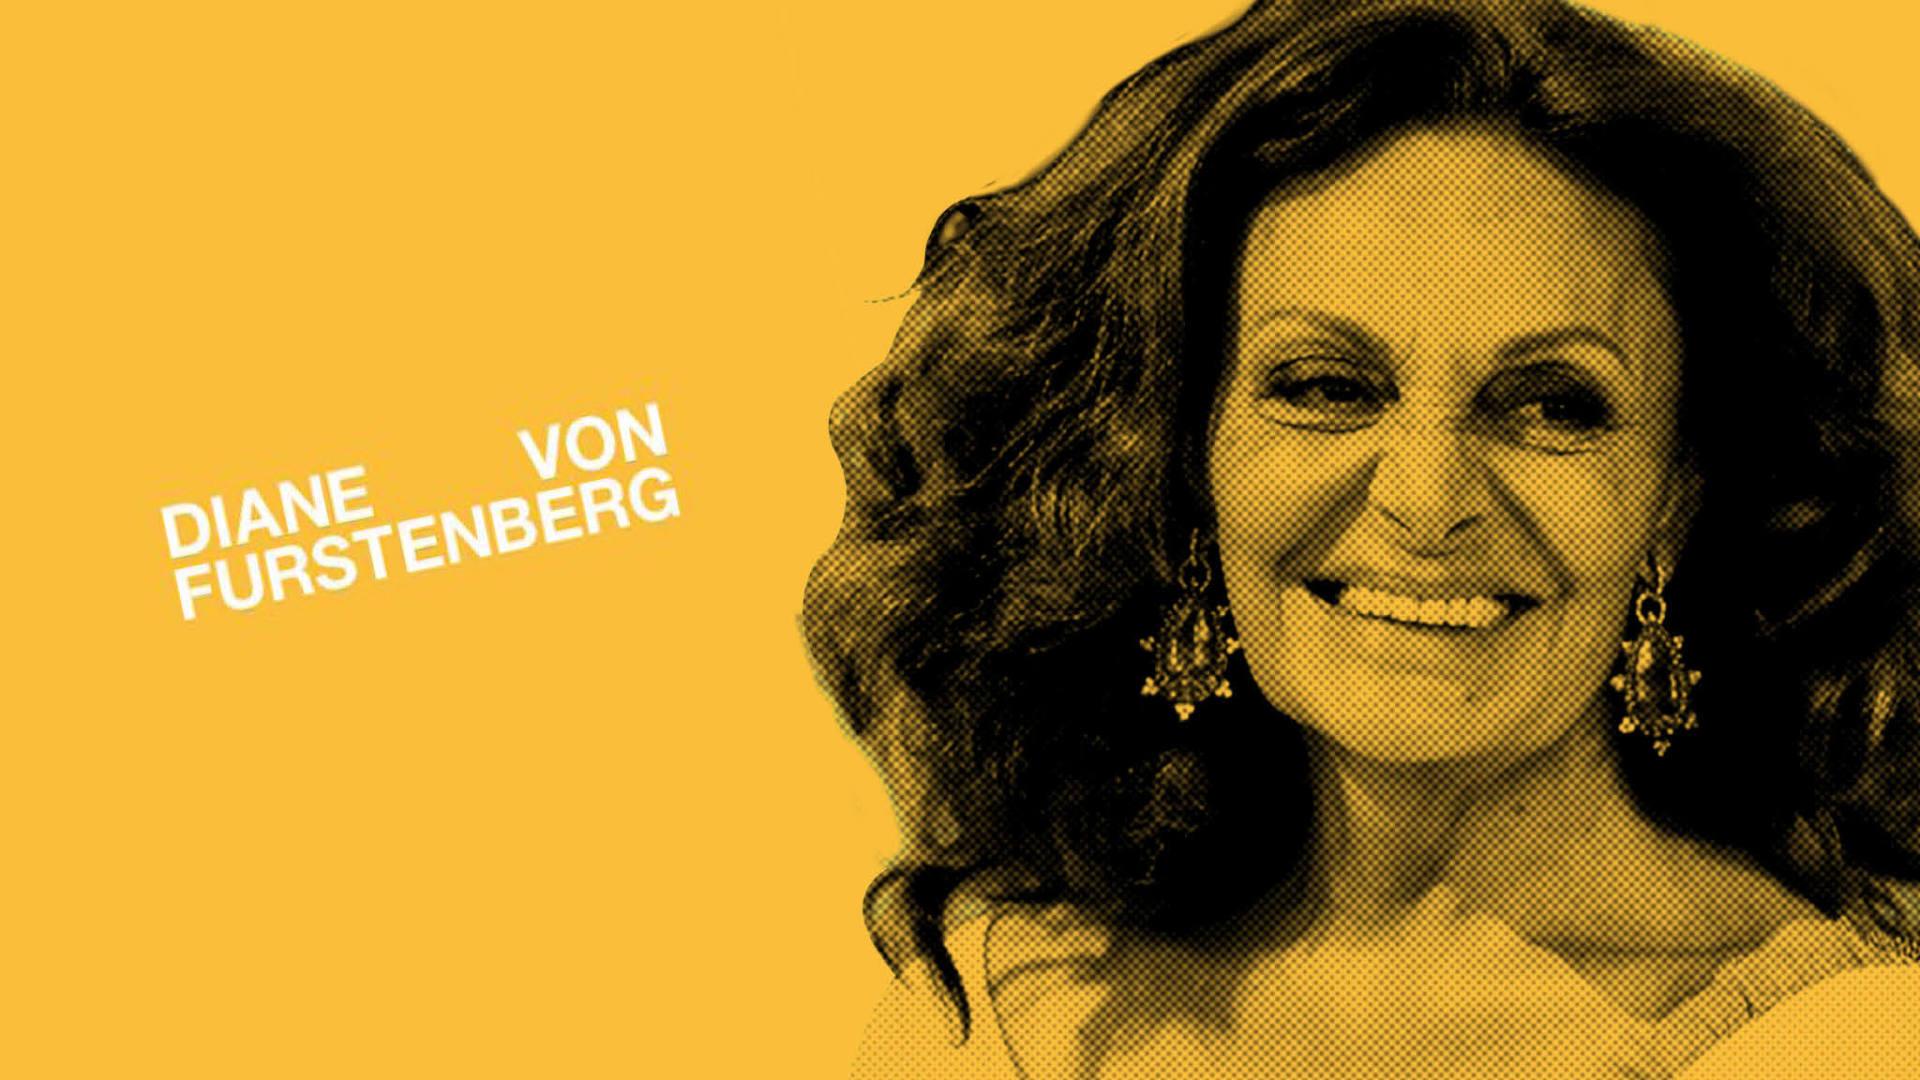 Female Founders Diane Von Furstenberg On Building A Fashion Empire Financial Times